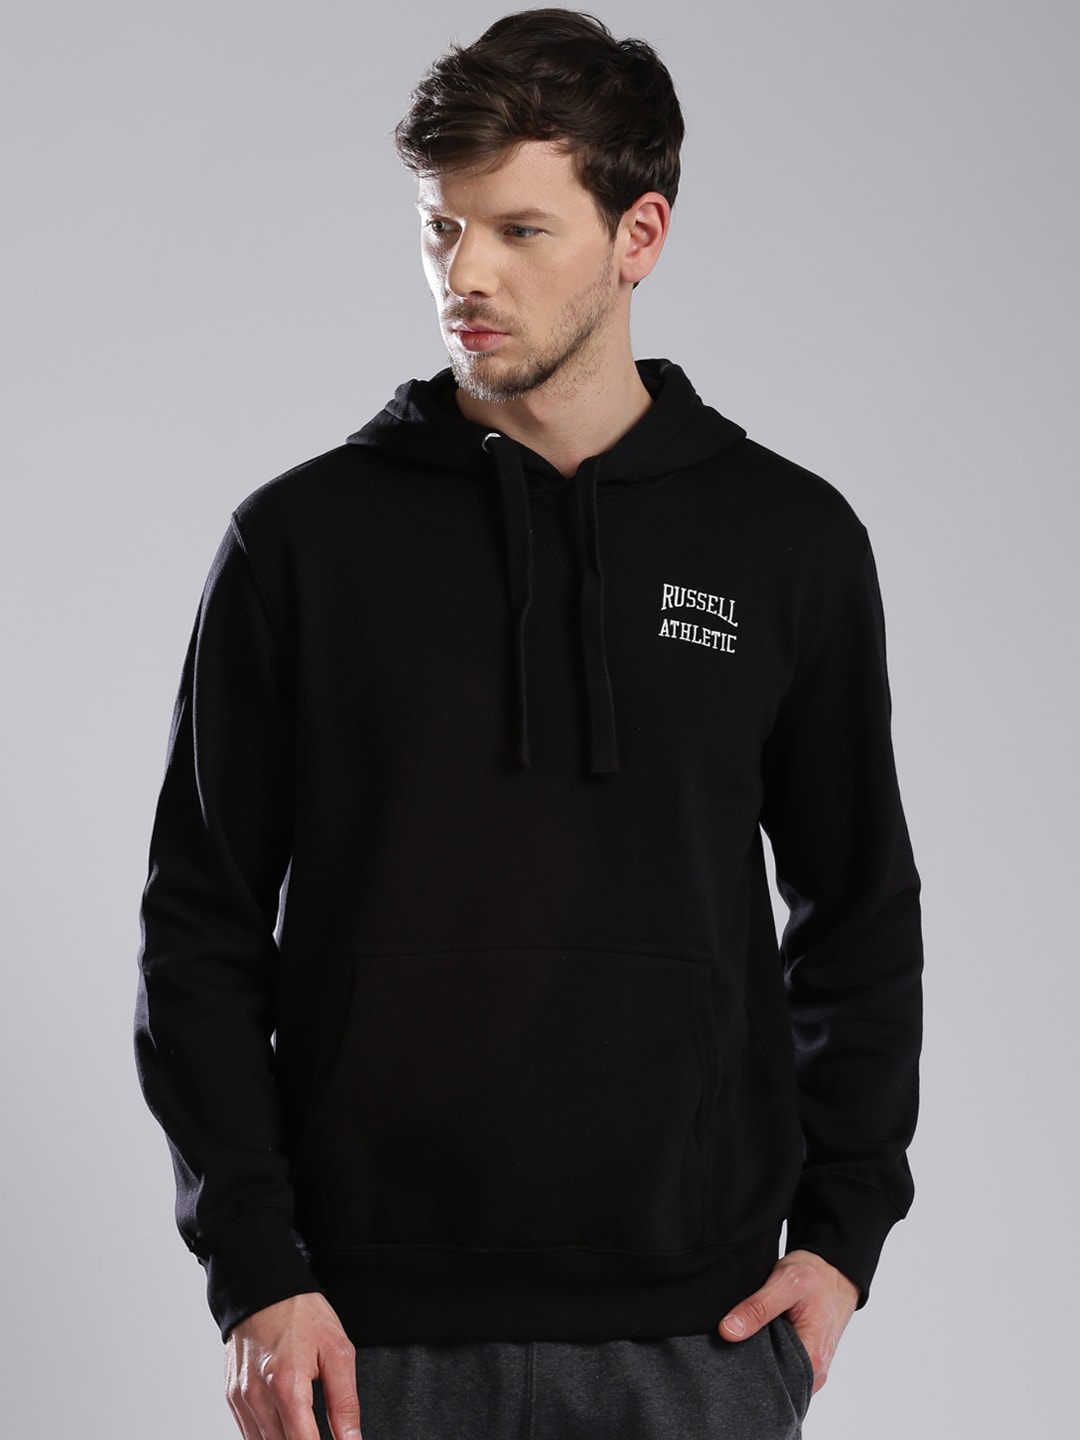 Russell Athletic Black Hooded Sweatshirt image